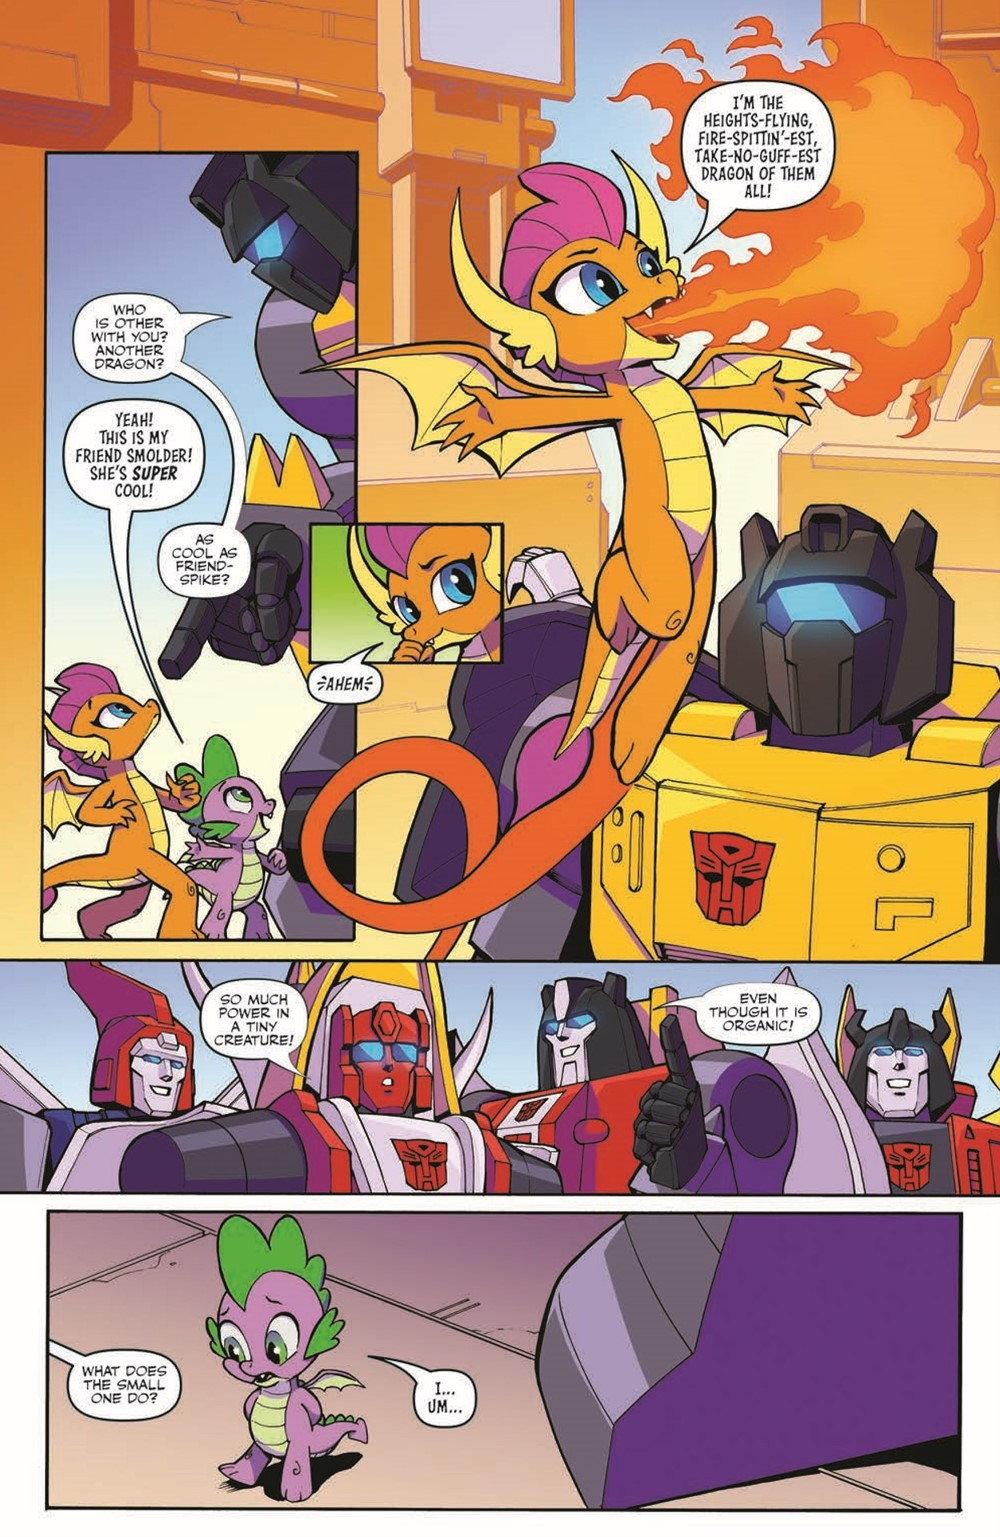 TFMLP2-04-pr-4 ComicList Previews: MY LITTLE PONY TRANSFORMERS II #4 (OF 4)